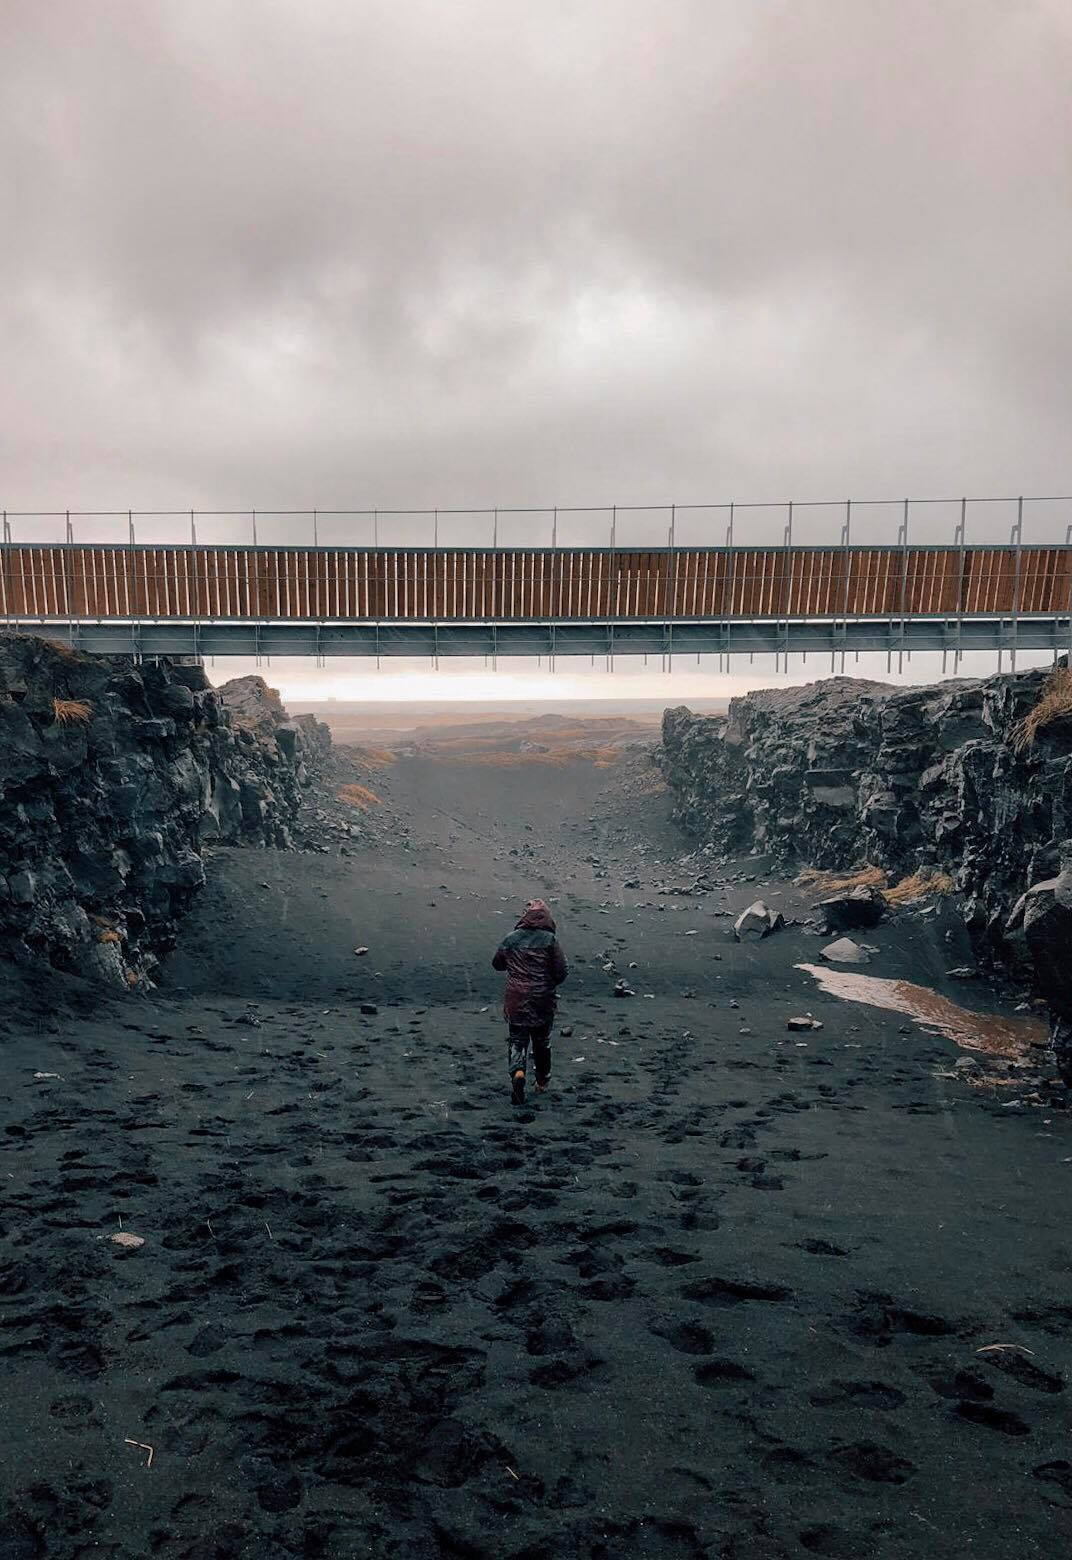 A girl running underneath the bridge across two continents. There is a lot of rain and footprints in the black sand below.